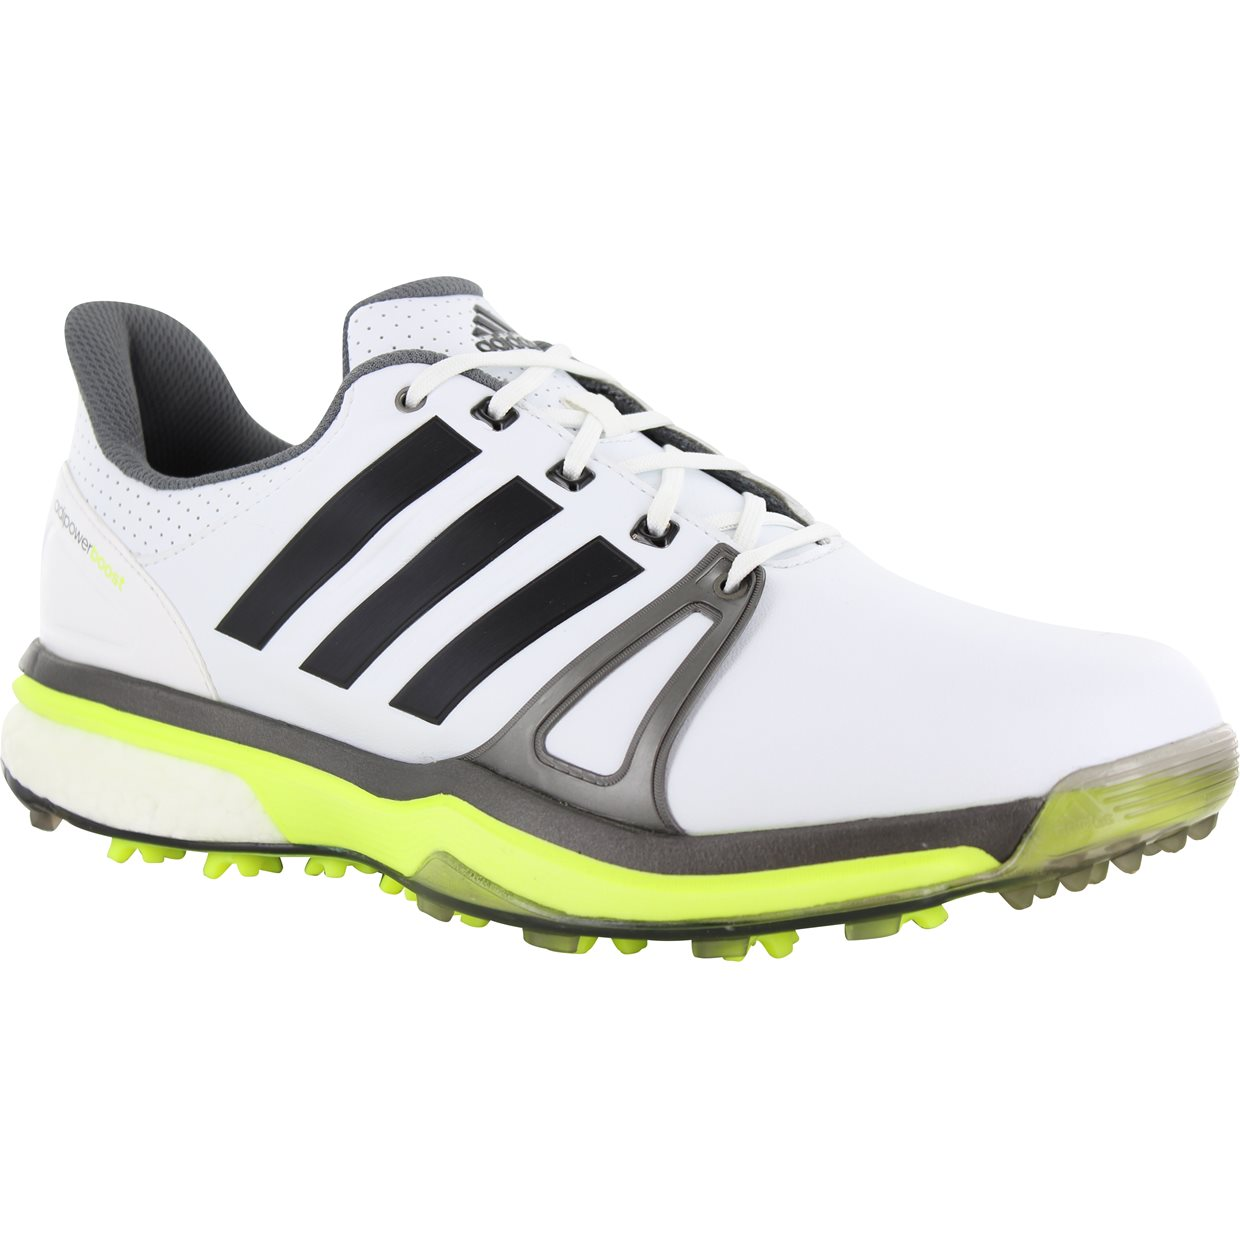 Adidas Boost 2 Golf Shoes